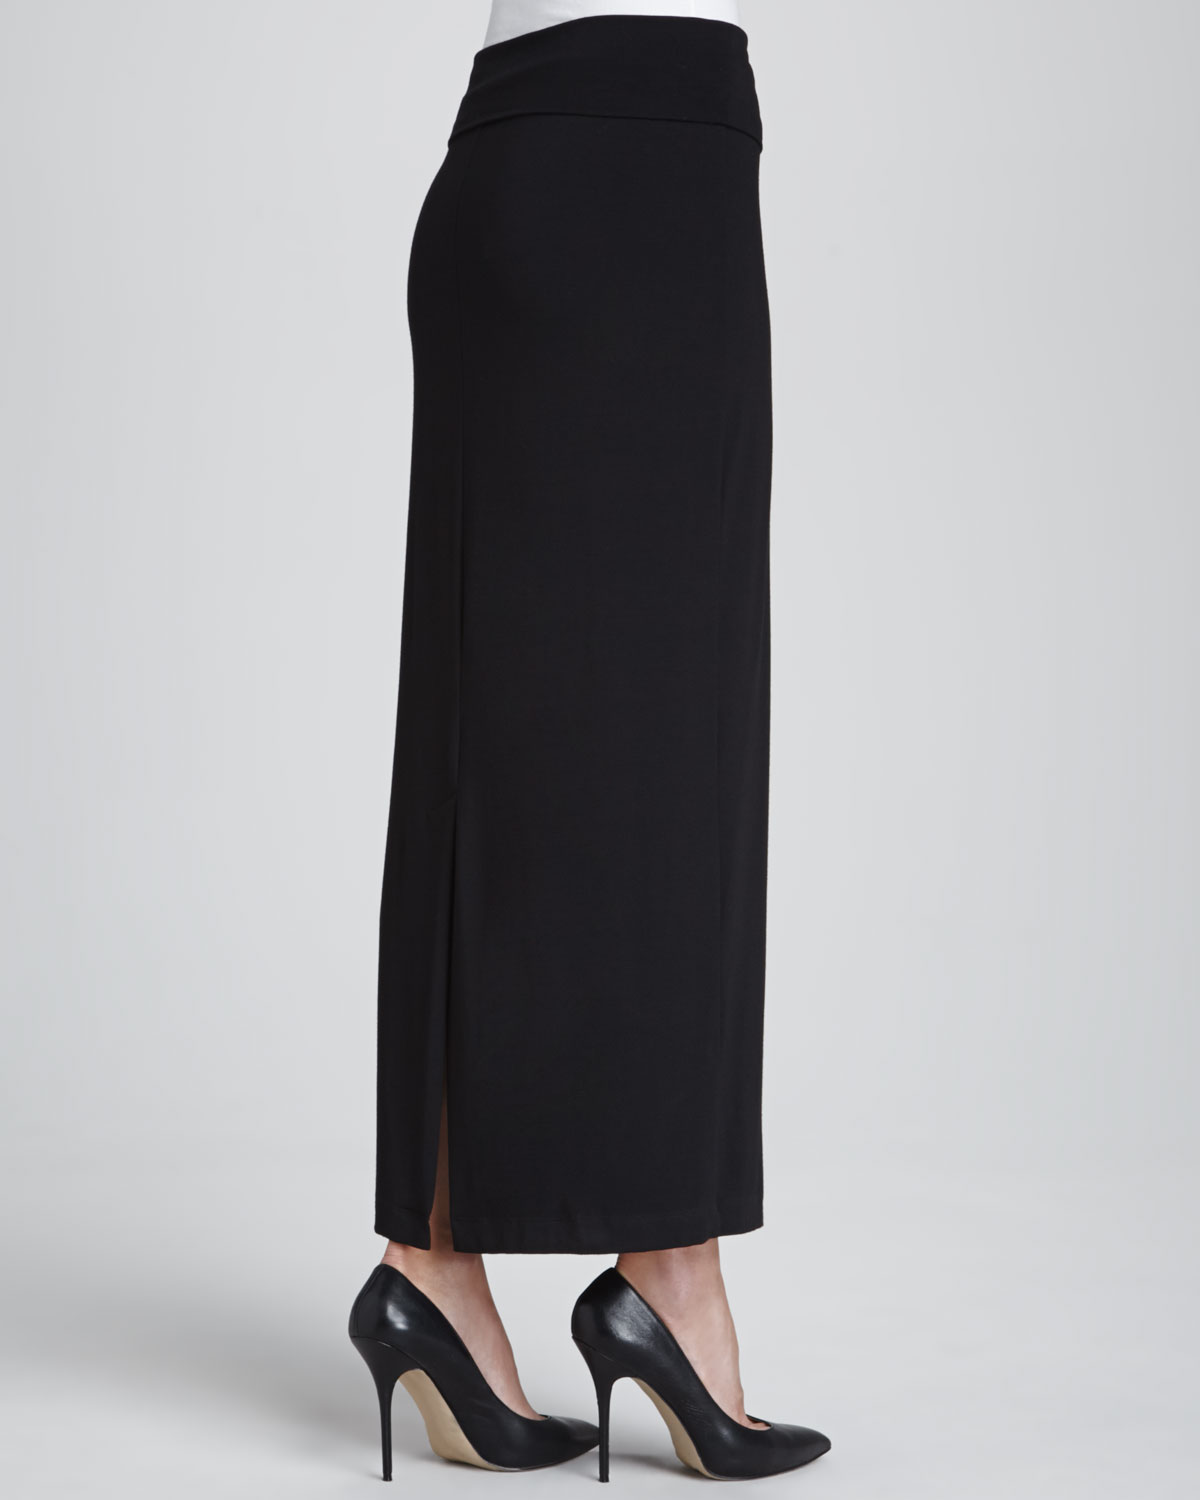 Eileen fisher Jersey Maxi Pencil Skirt Petite in Black | Lyst